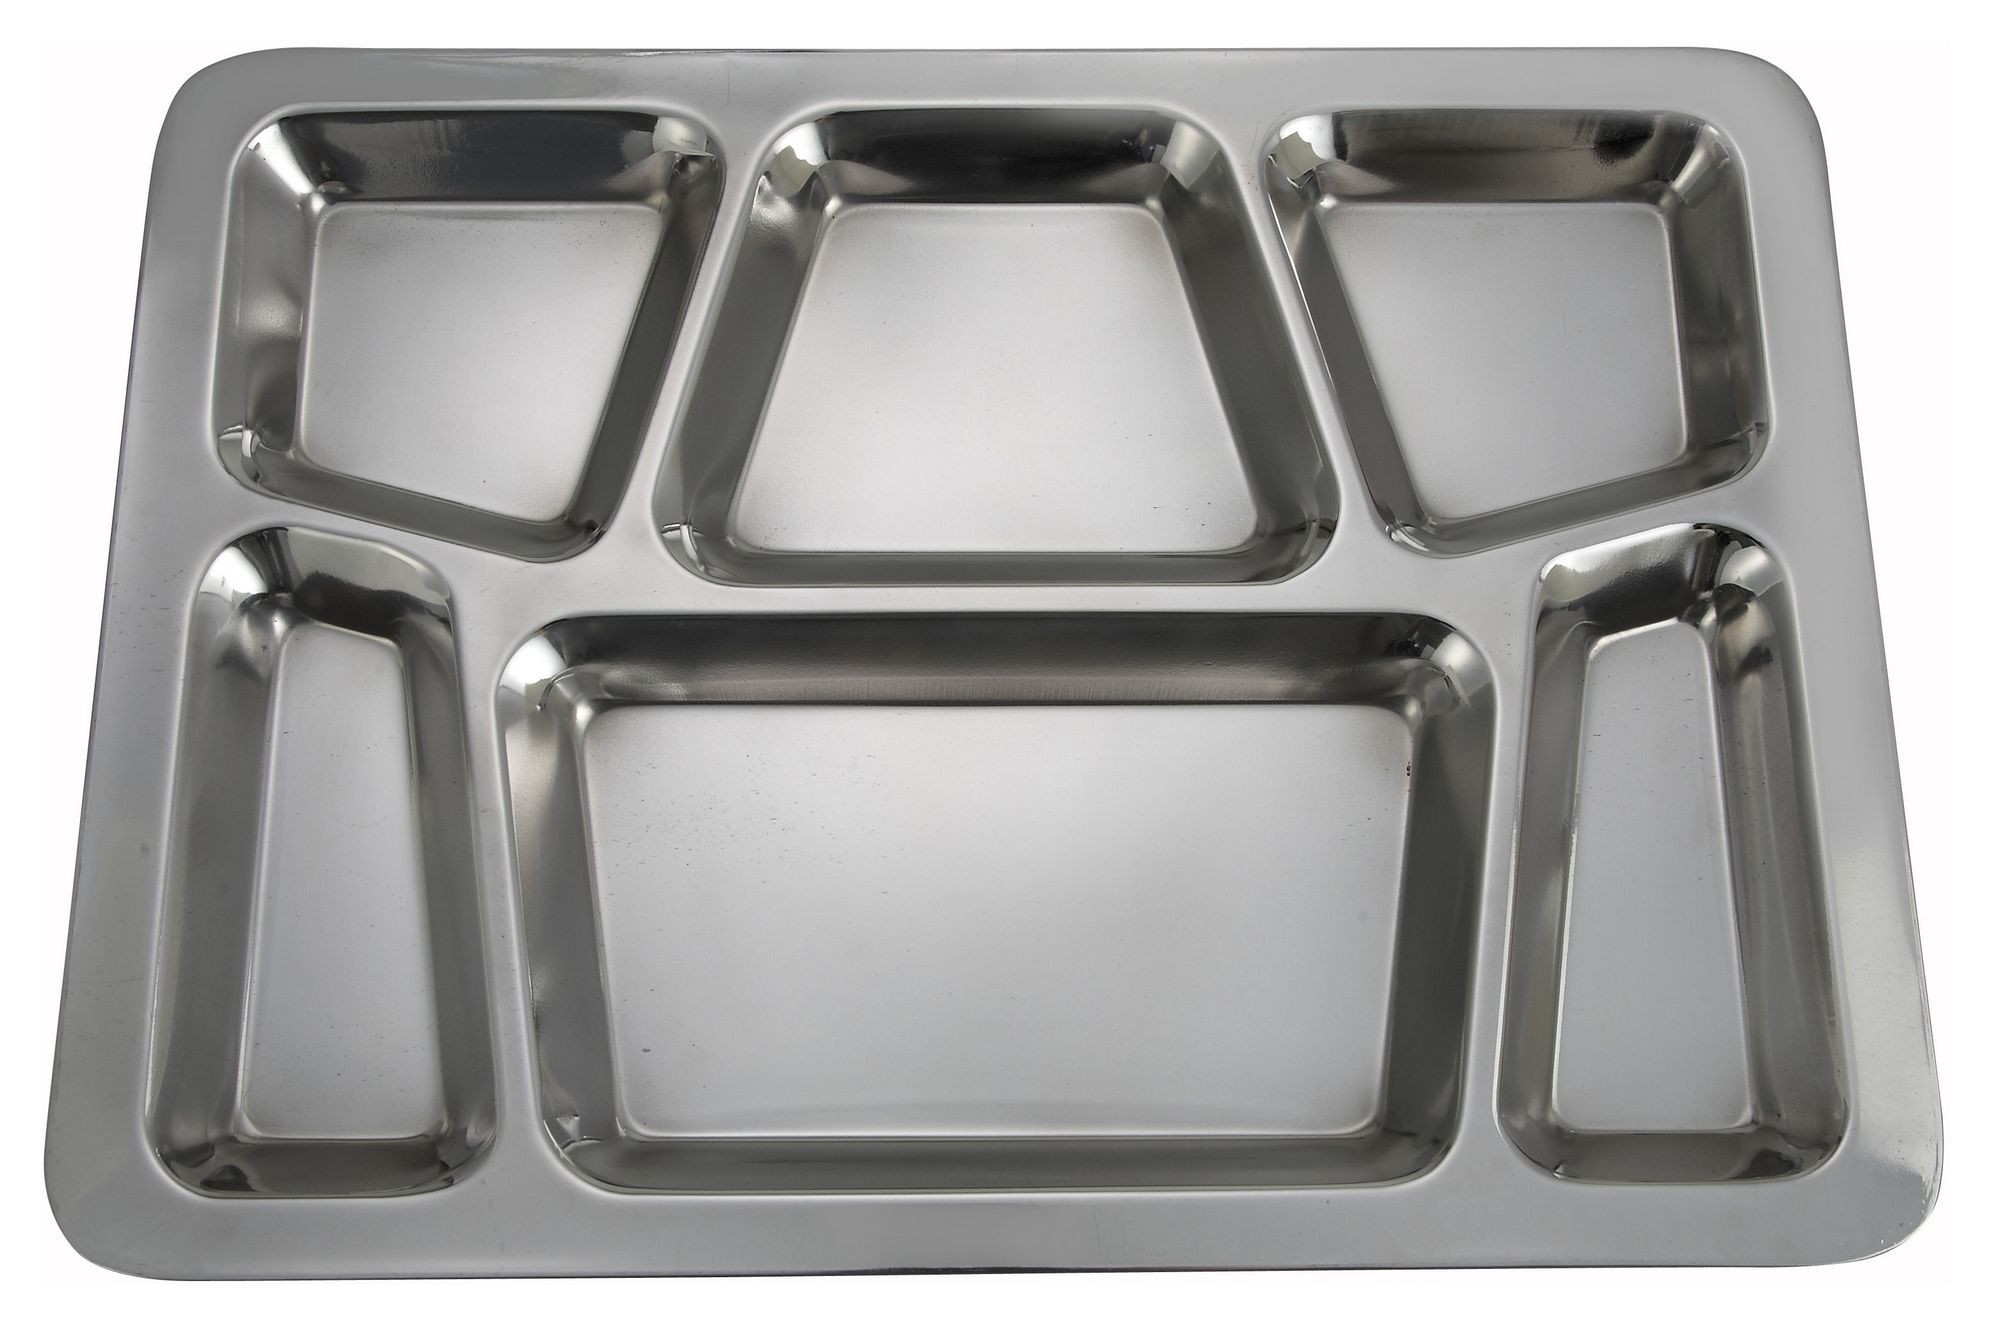 Winco SMT-2 Stainless Steel 6-Compartment Mess Tray, Style B